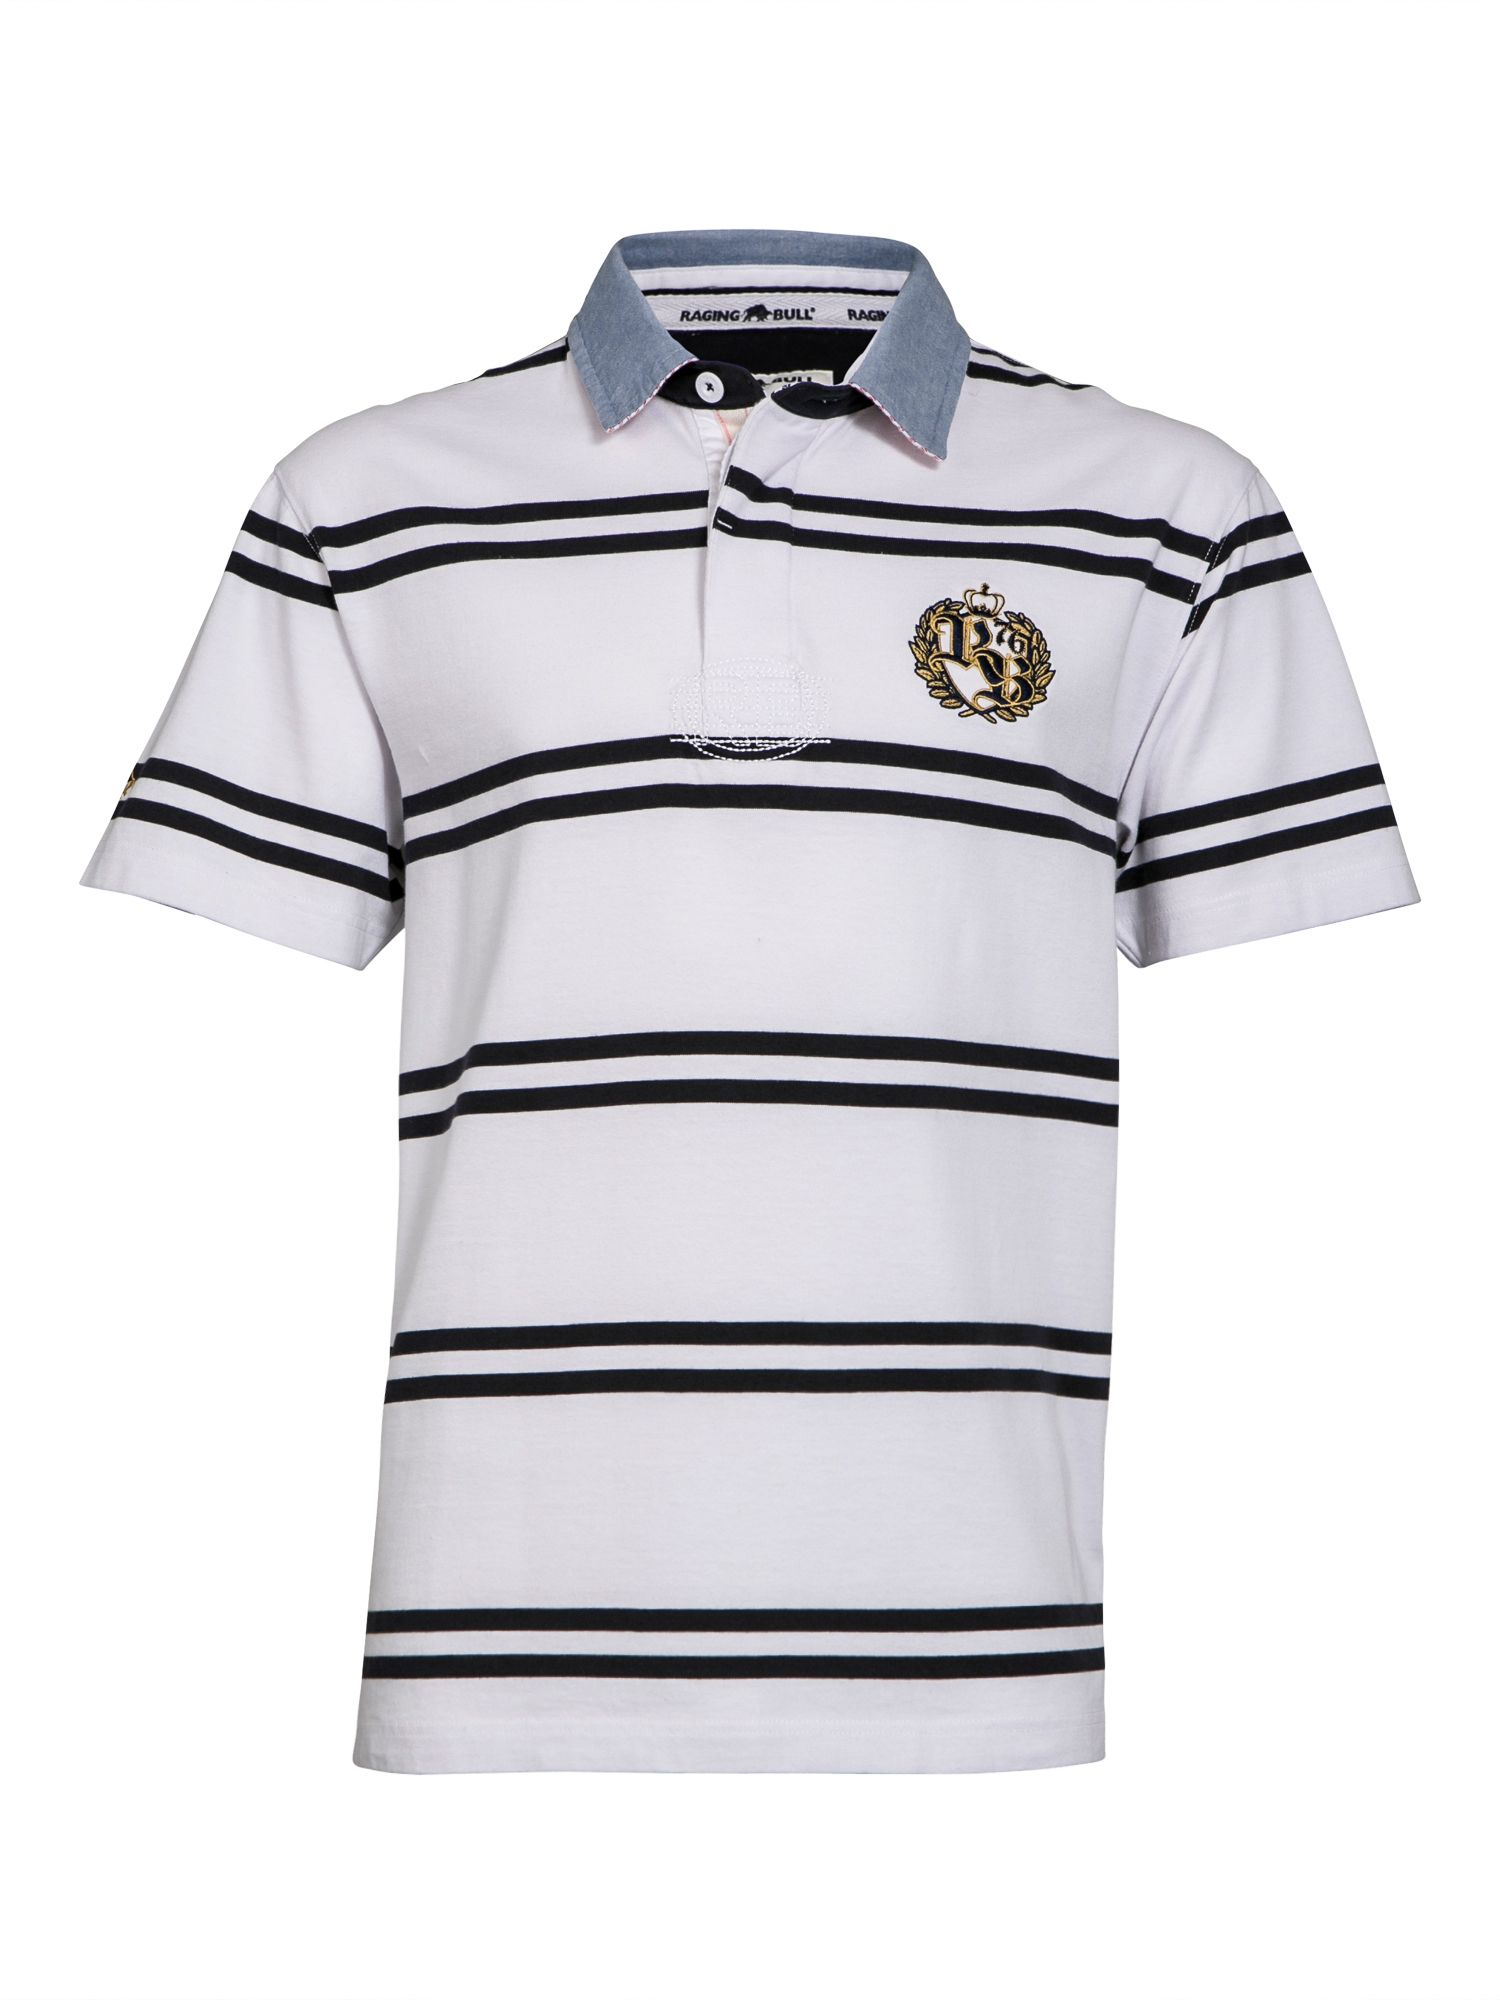 Double stripe crest rugby shirt